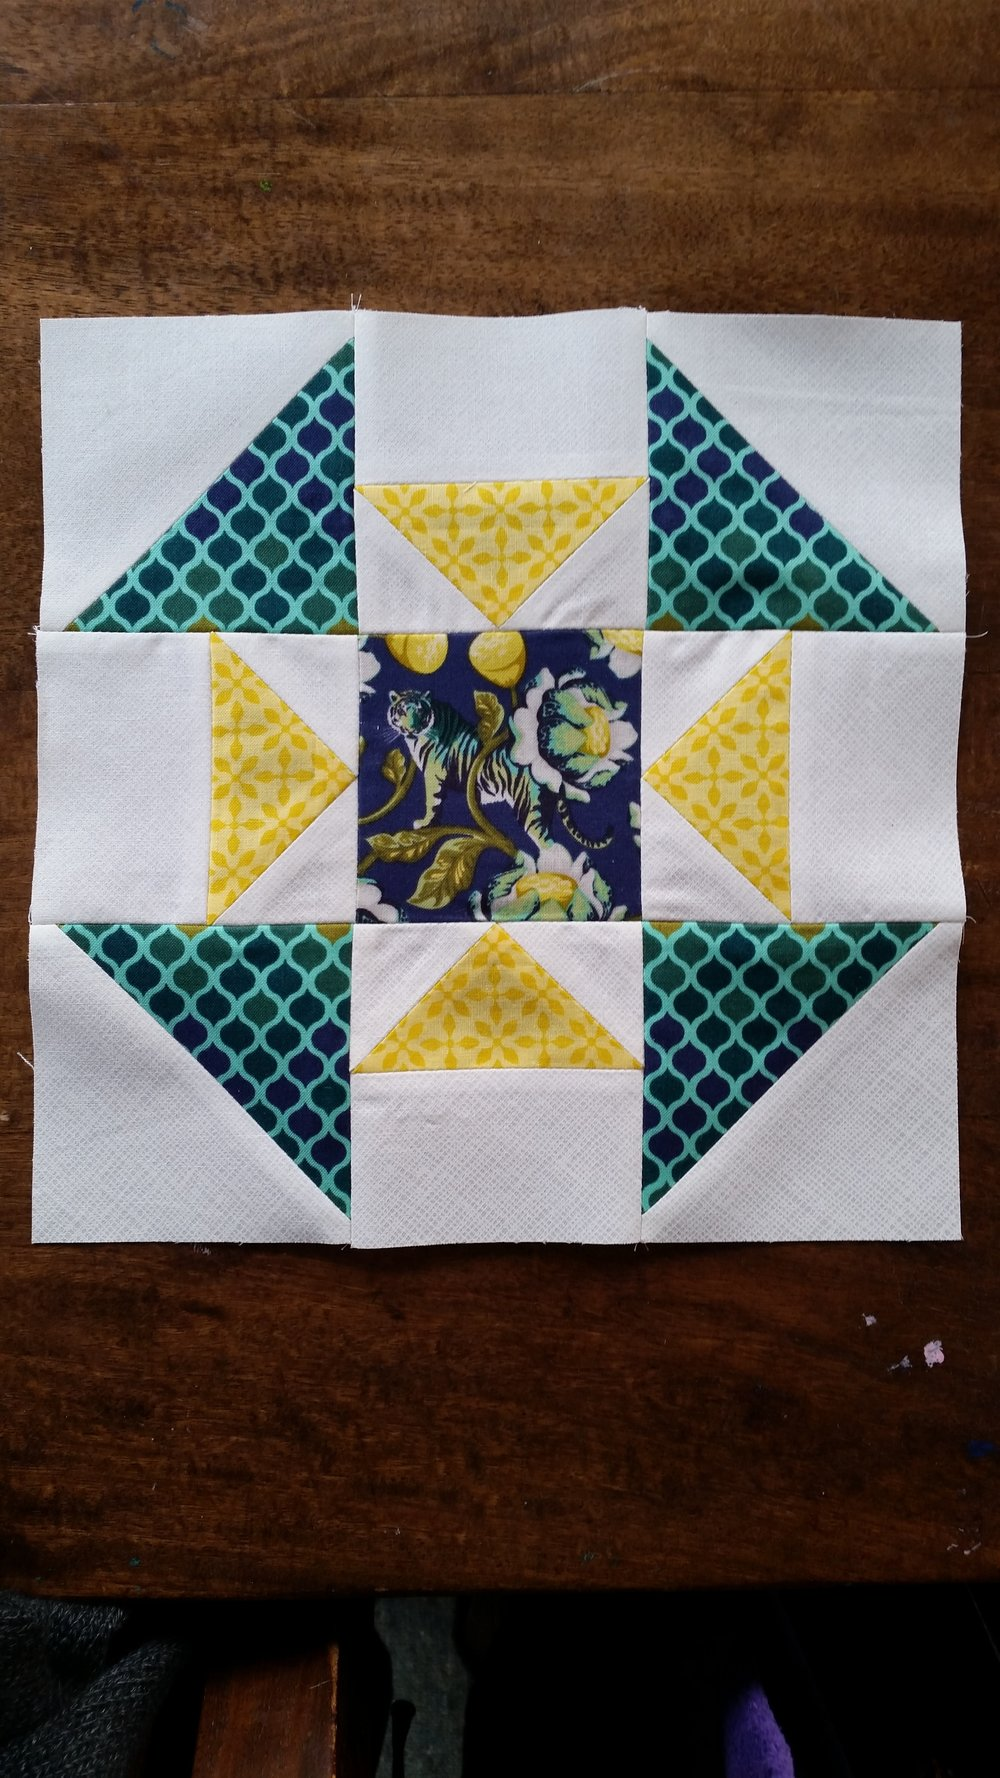 Jess from Elven Garden Quilts made this beautiful block with perfectly matched colors to highlight the tiger motif!